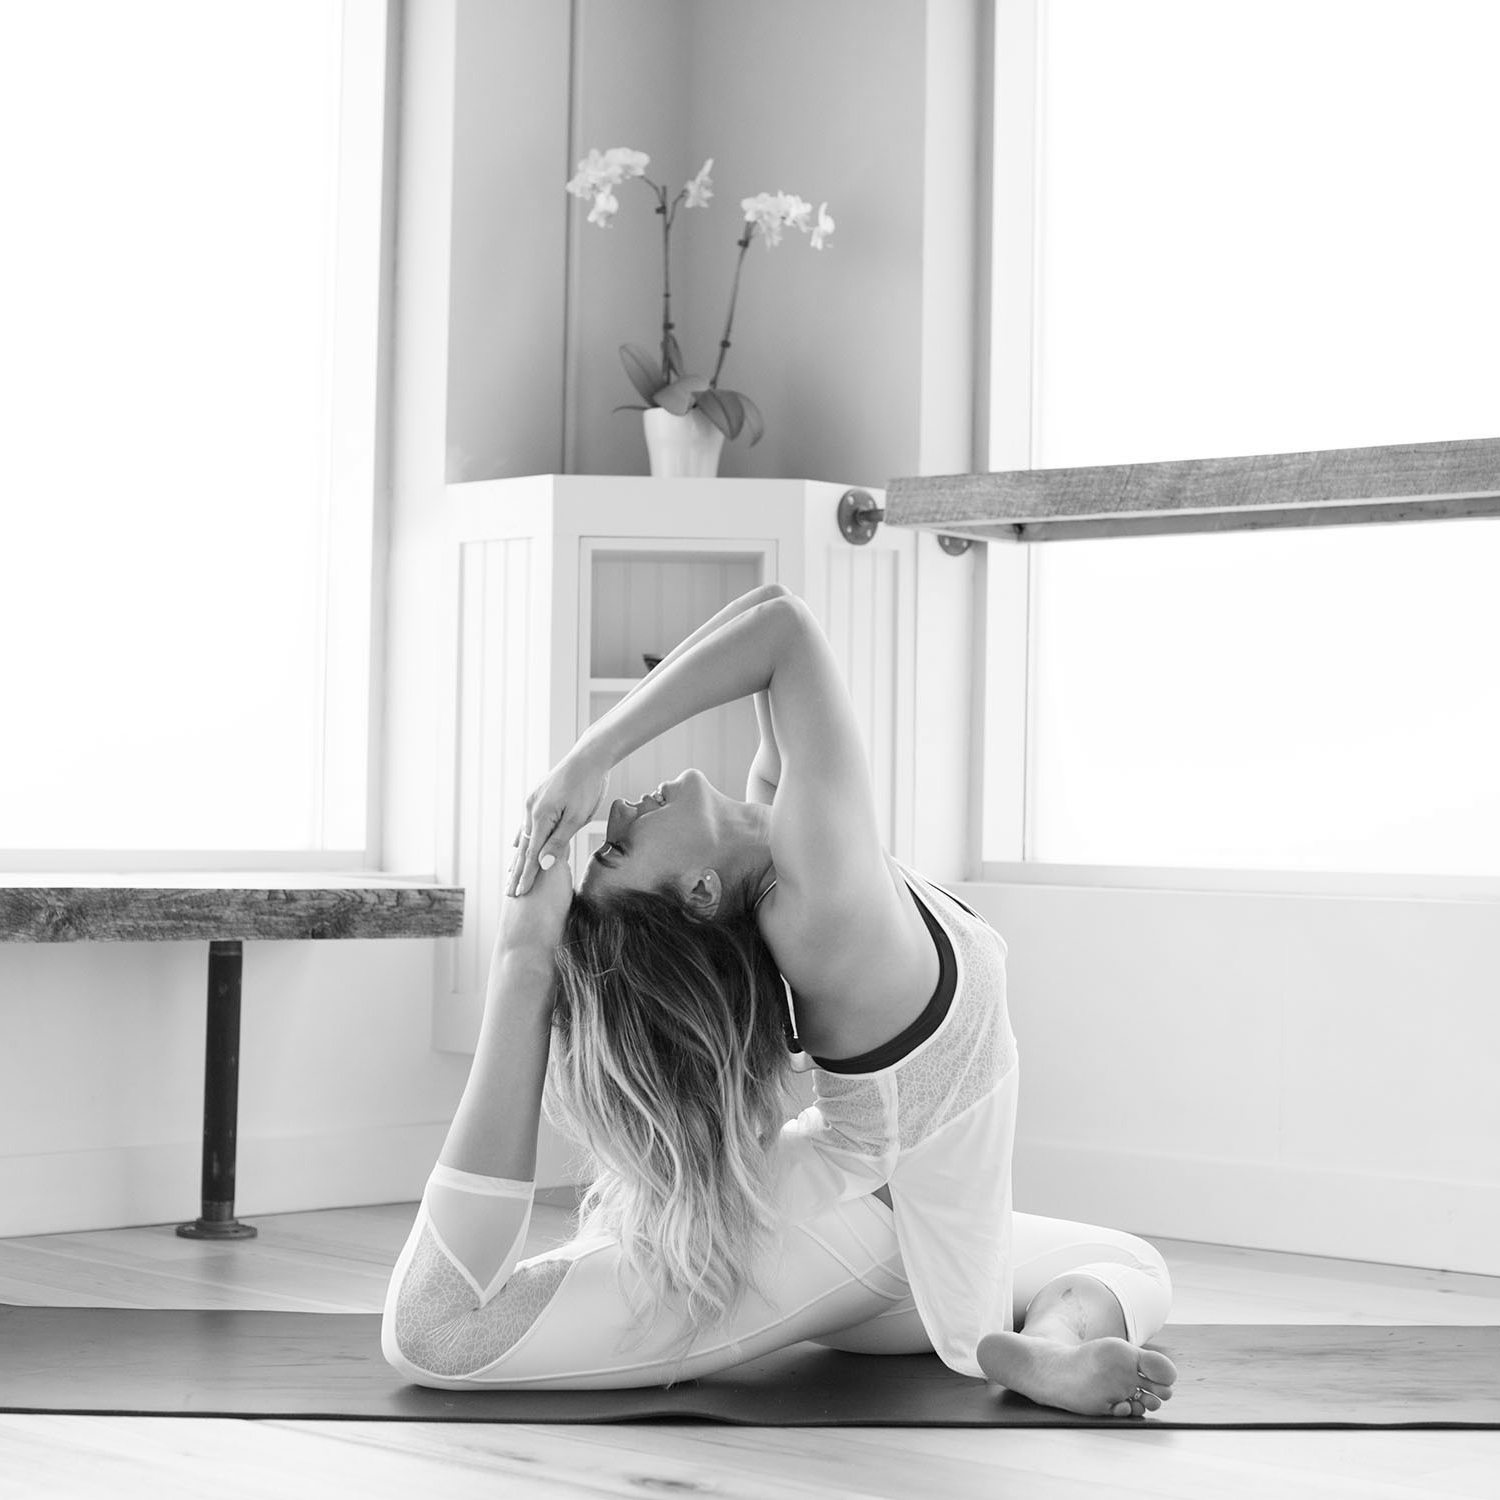 Incorporating Yoga - Learn how to incorporate yoga in your daily life, training and/or teaching. In these clinics, the various styles of yoga and best uses of each style will be explored.